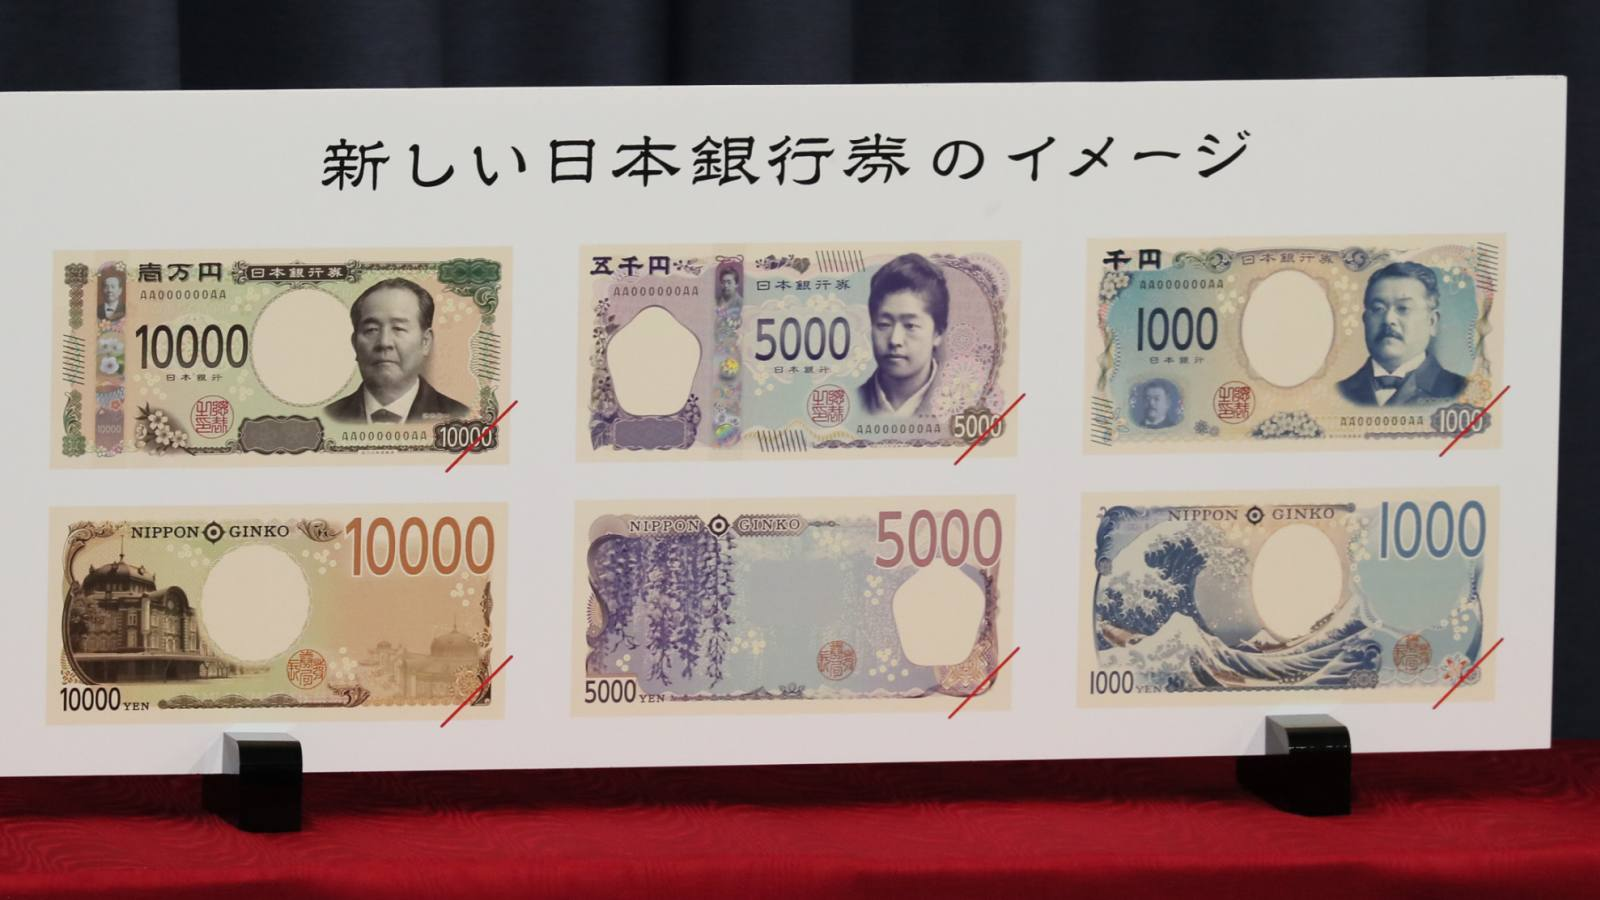 Japan's new bank notes will feature more detailed watermarks to guard against counterfeiting. (Photo by Hirofumi Yamamoto)